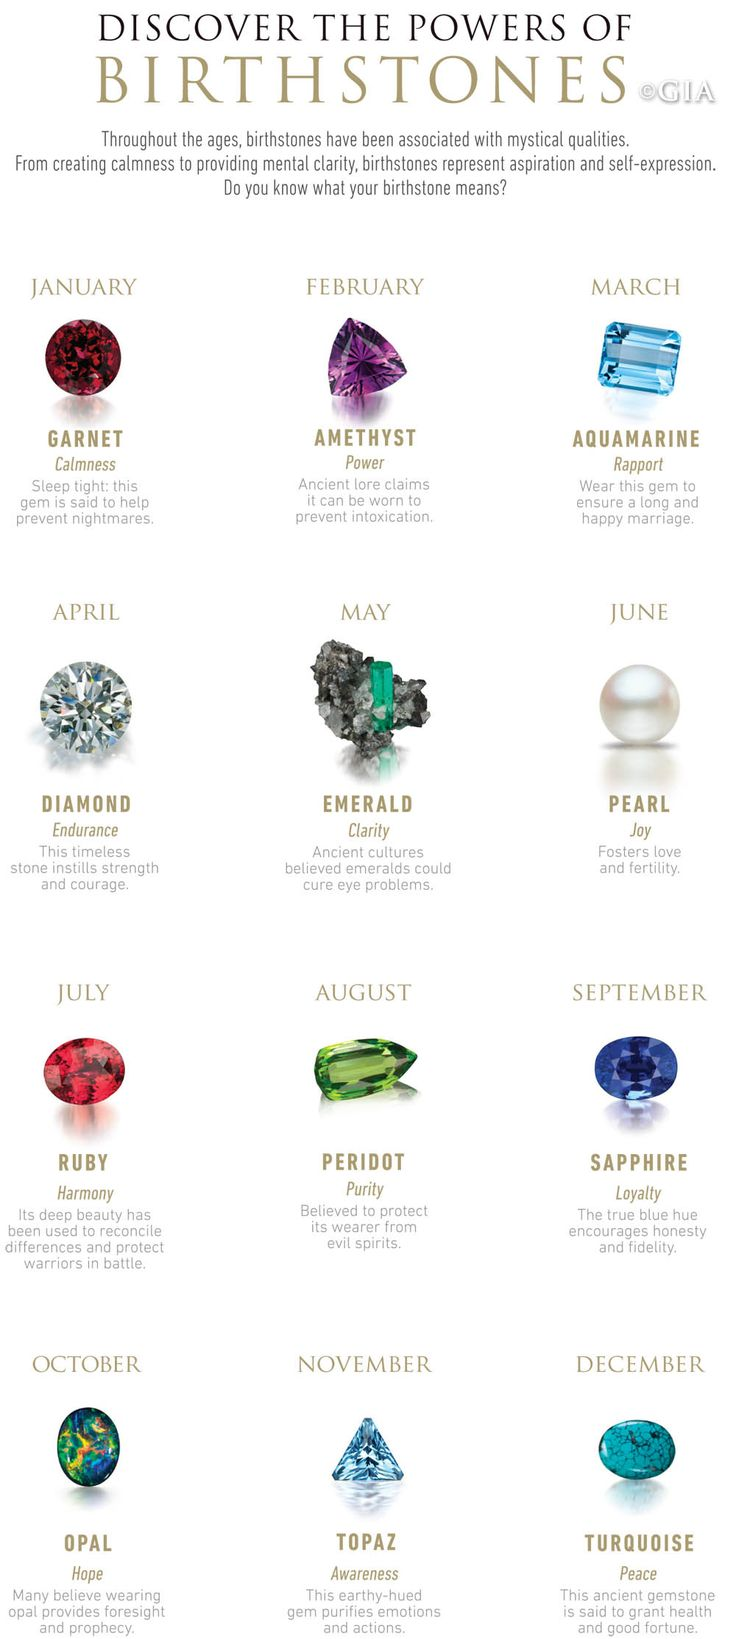 Birthstone Meanings And Powers